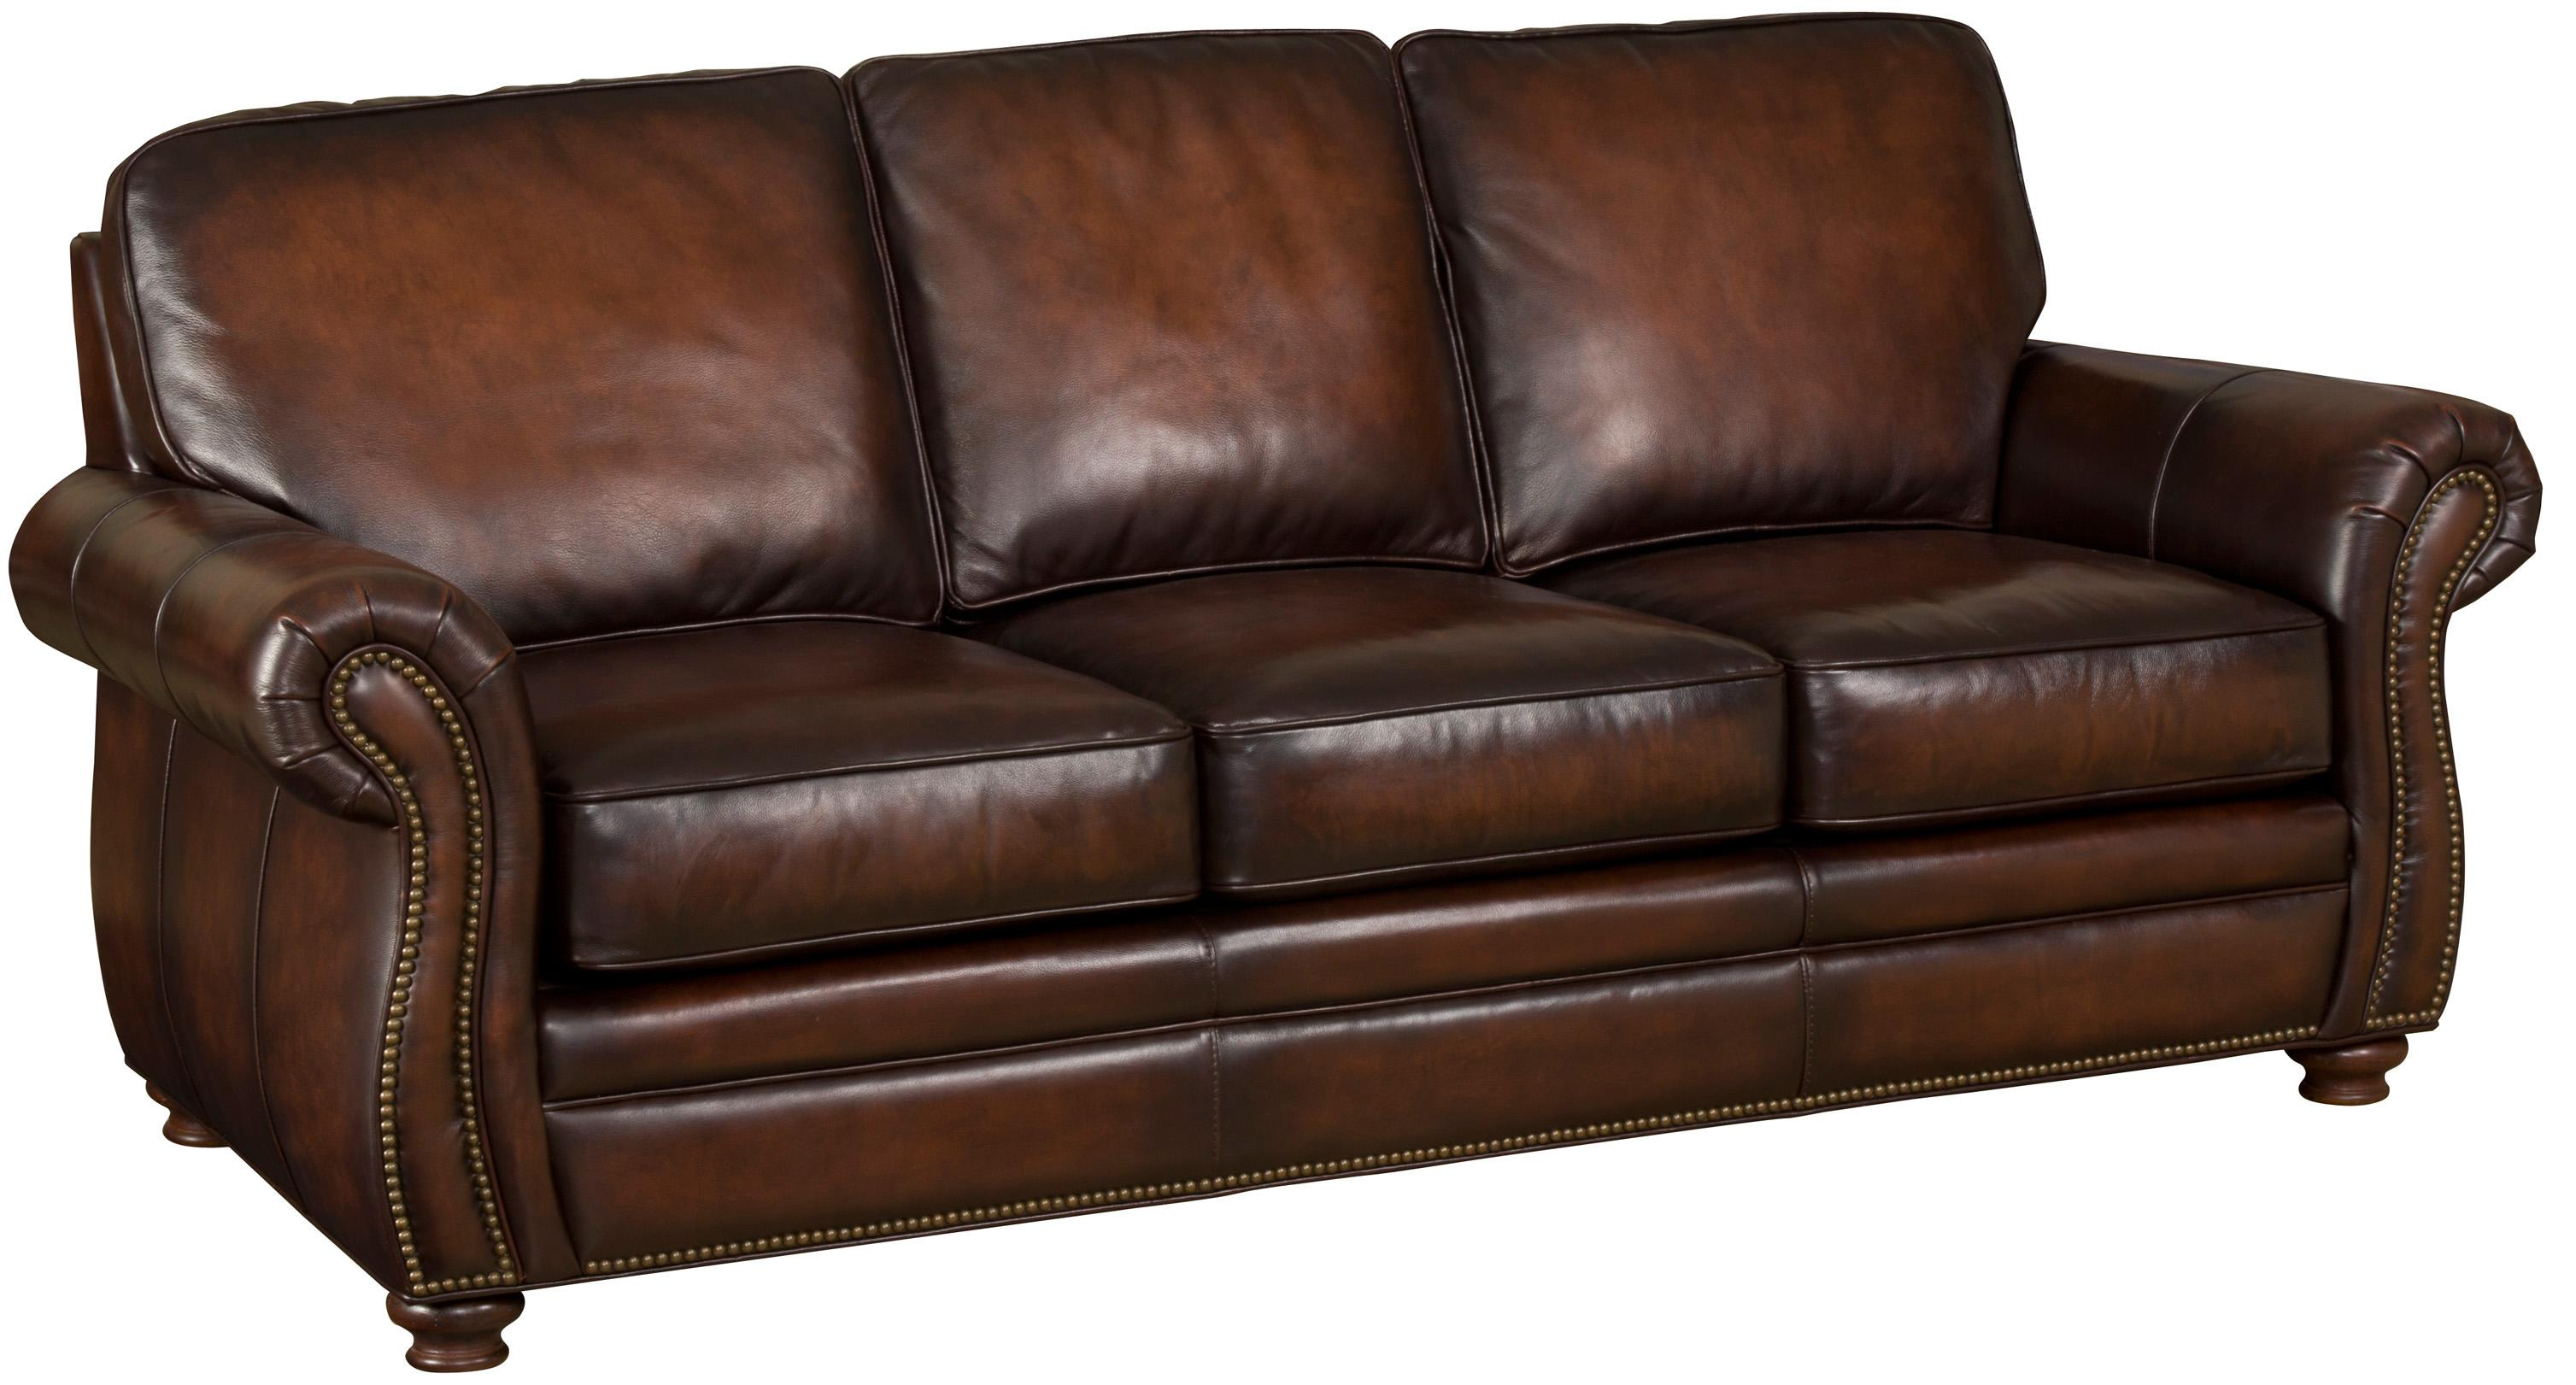 Hooker Furniture SS186 Brown Leather Sofa - Item Number: SS186-03-089